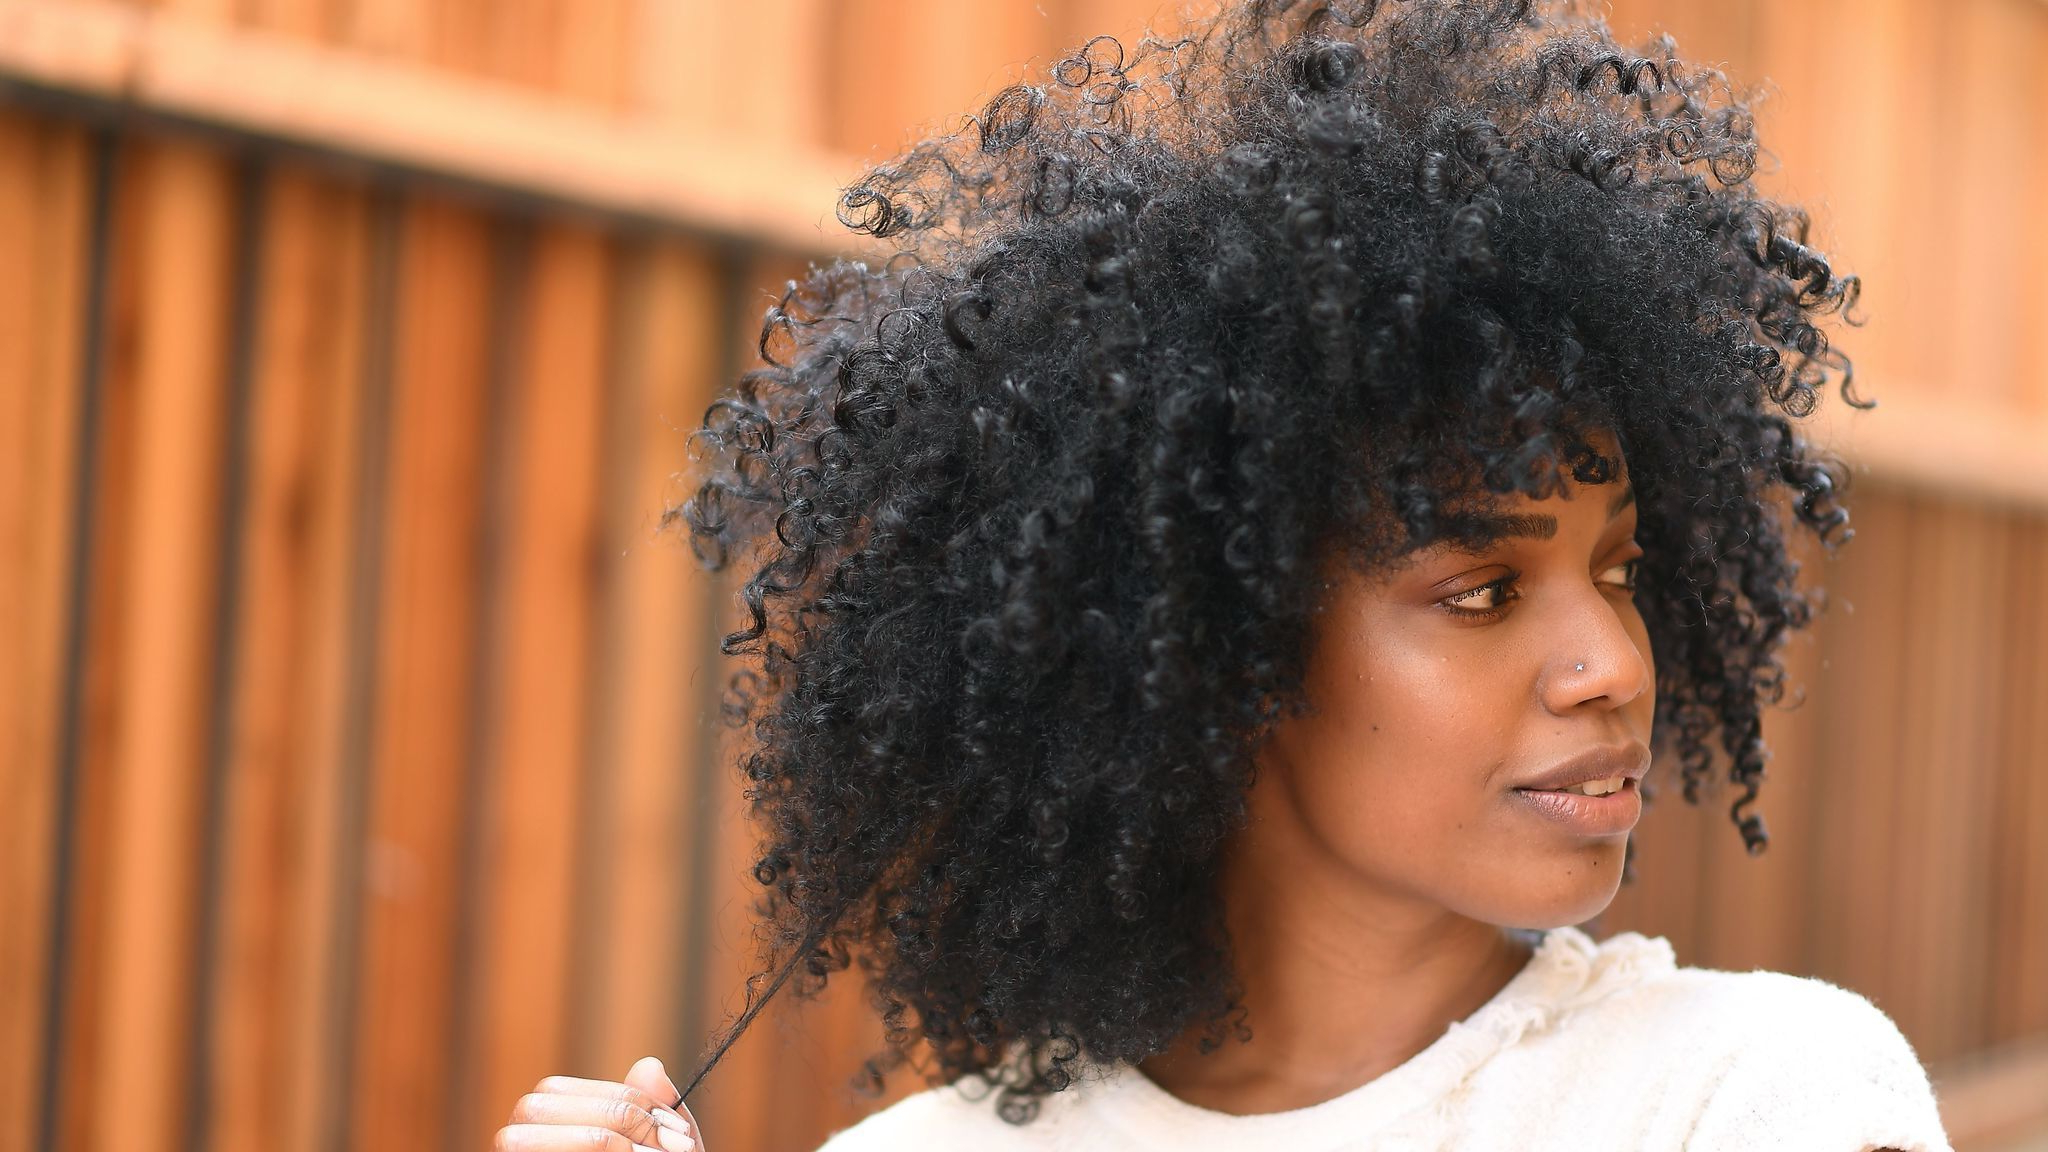 African American Natural Hairstyles For Medium Length Hair Intended For 2018 Medium Hairstyles For African American Hair (View 2 of 20)